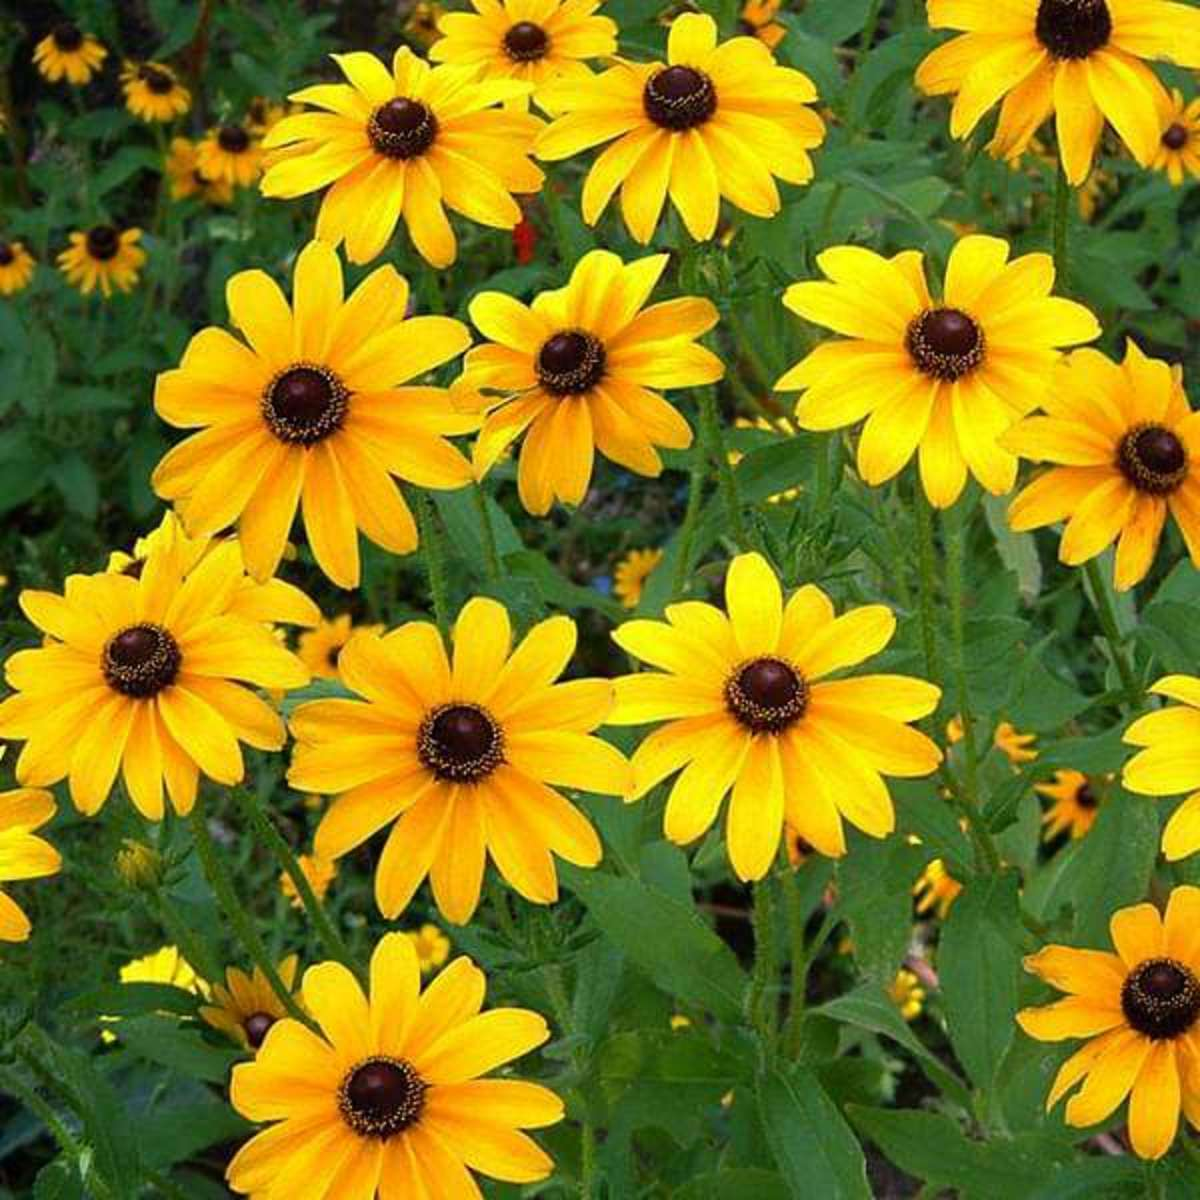 As the name suggests the size of these flowers is small compared to the normal Sunflower.  This plant grows 2 to 3 feet tall and a minimum of 30 to 40 flowers bloom at a time on these plants.